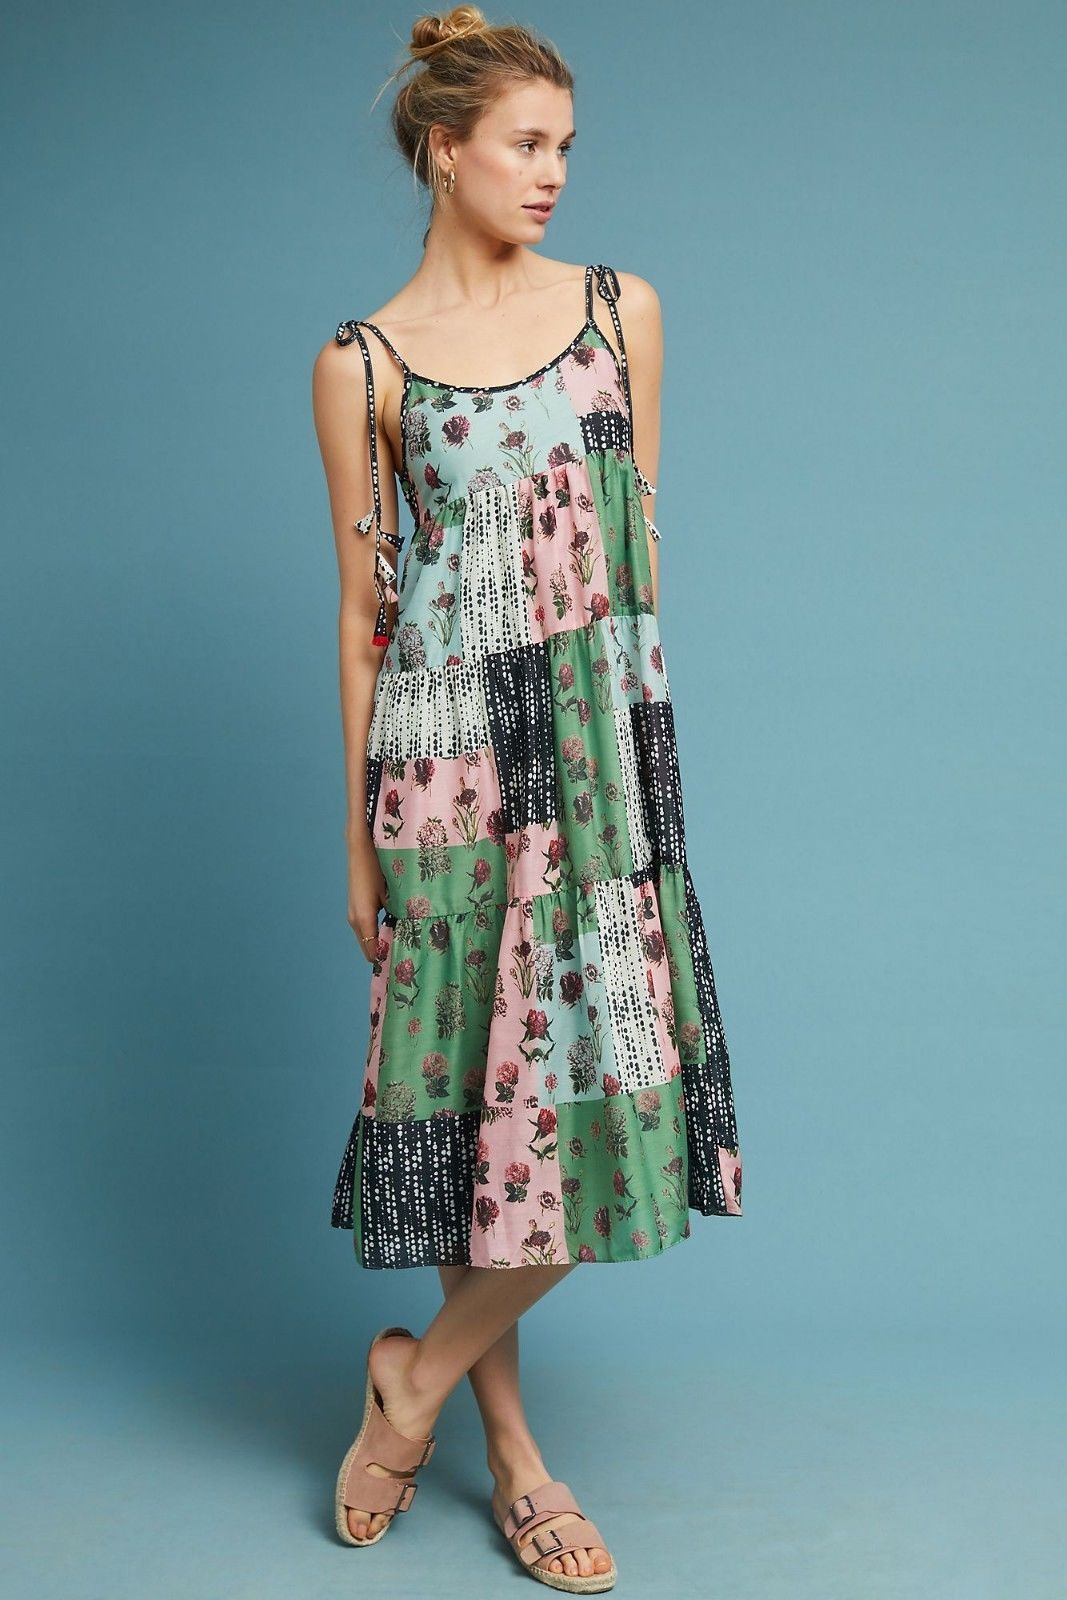 Primary image for NWT ANTHROPOLOGIE PLANTES MIX PRINT SWING DRESS by PALLAVI SINGHEE M